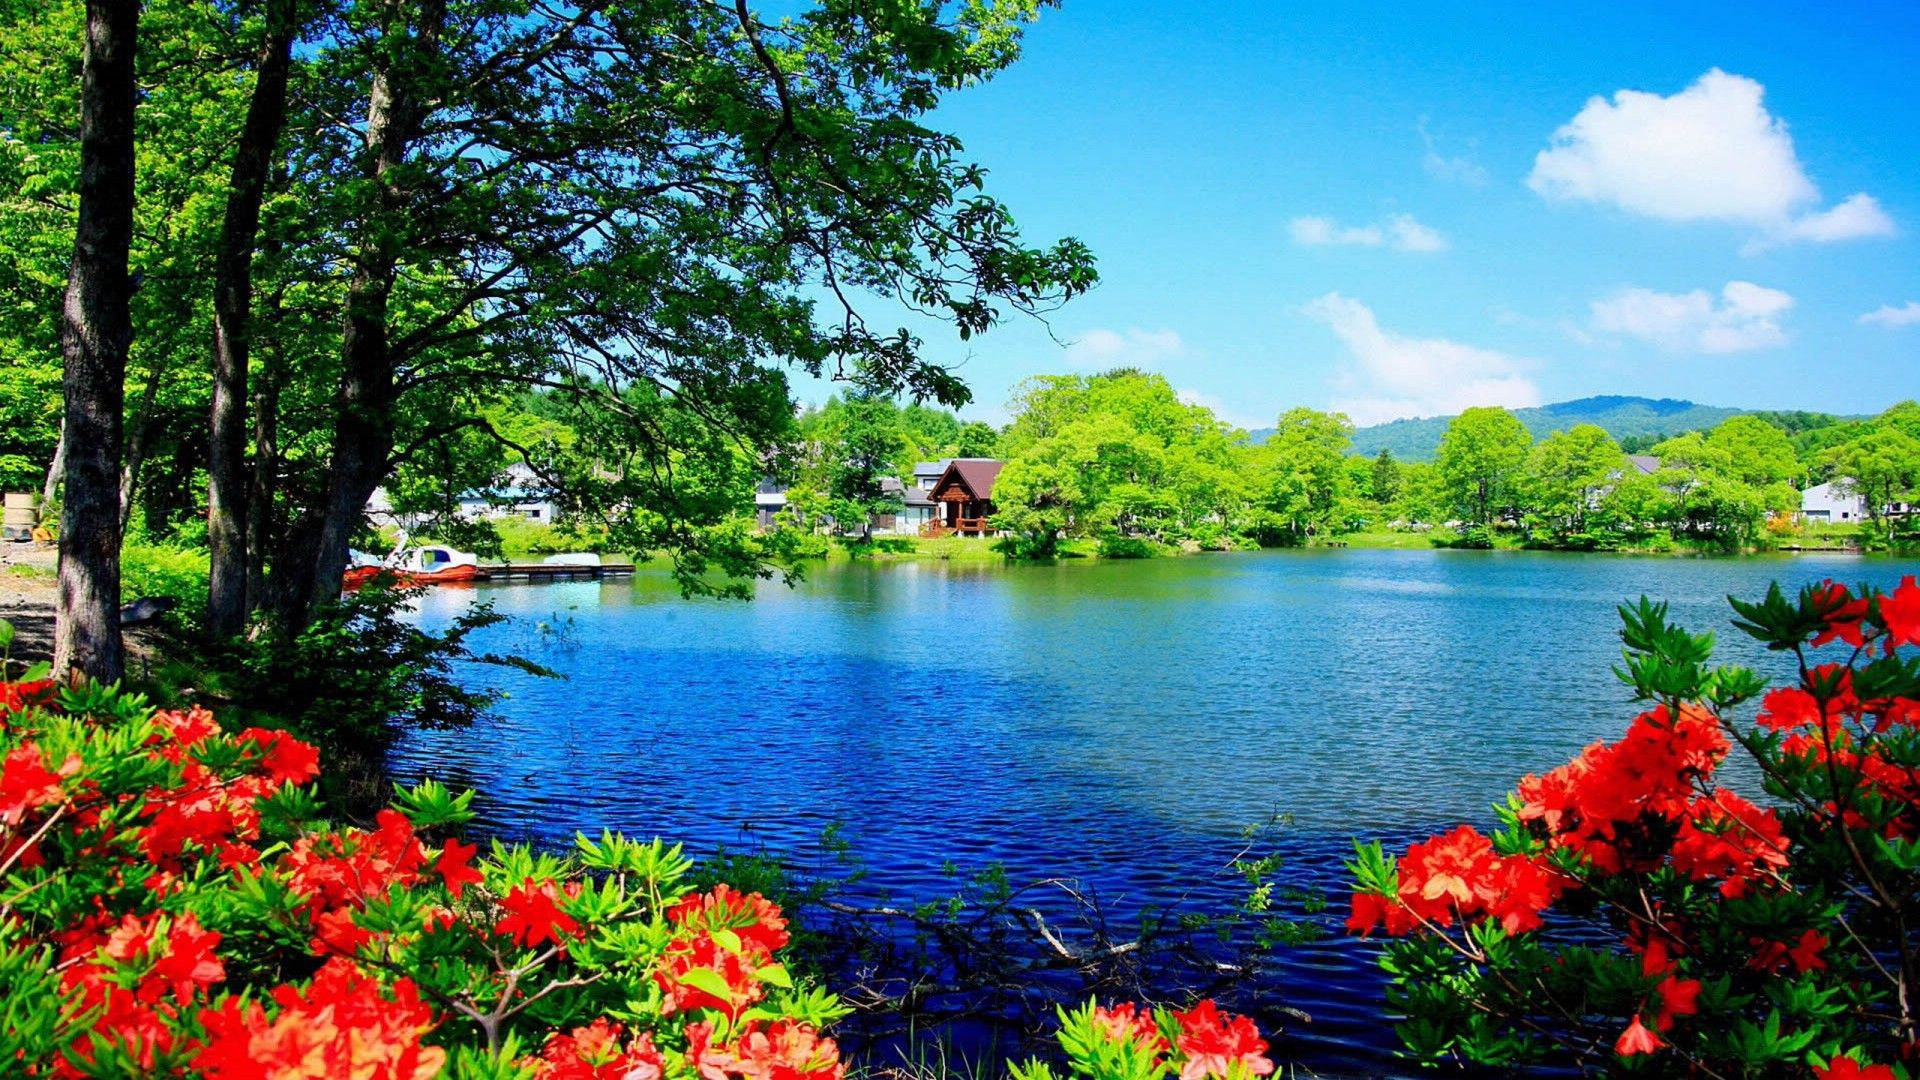 Some Nice Wallpapers Free To Download For Personal Use 915 571 Wallpapers Download Hd For D Beautiful Nature Beautiful Images Nature Beautiful Nature Wallpaper